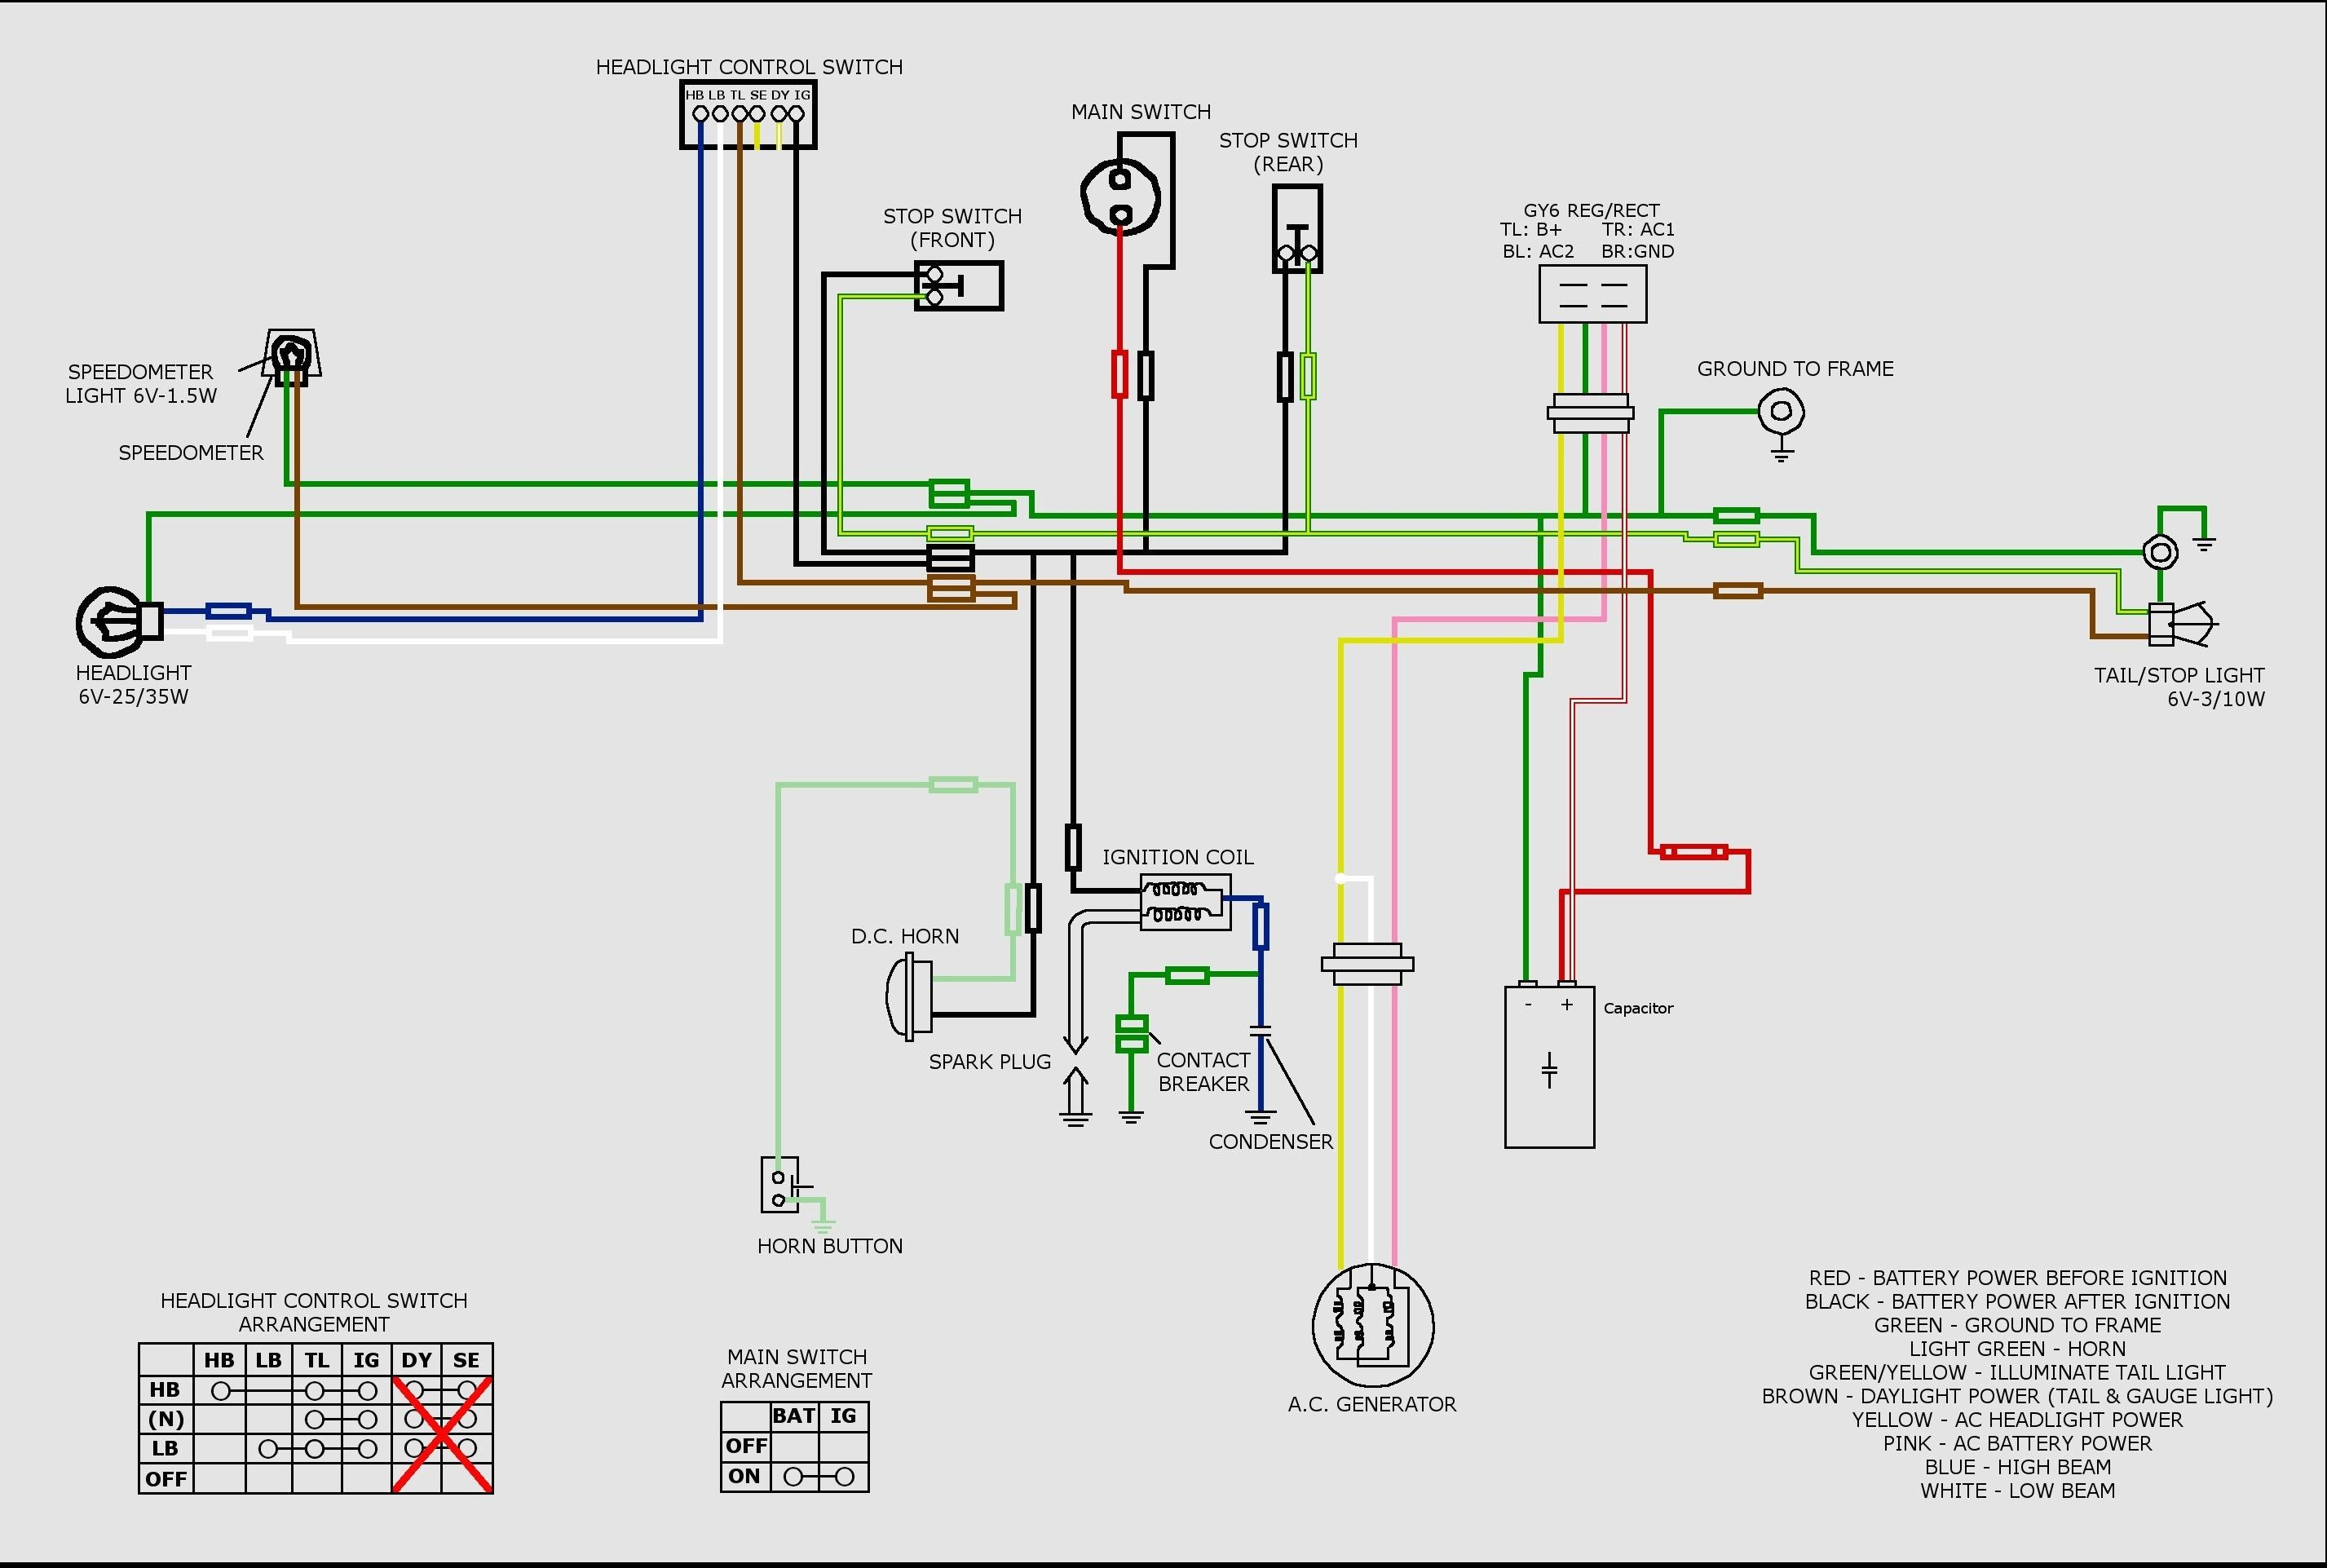 Wiring Diagram On ford 650 Gy6 Wiring Diagram Awesome 150cc Gy6 Wiring Diagram within Of Wiring Diagram On ford 650